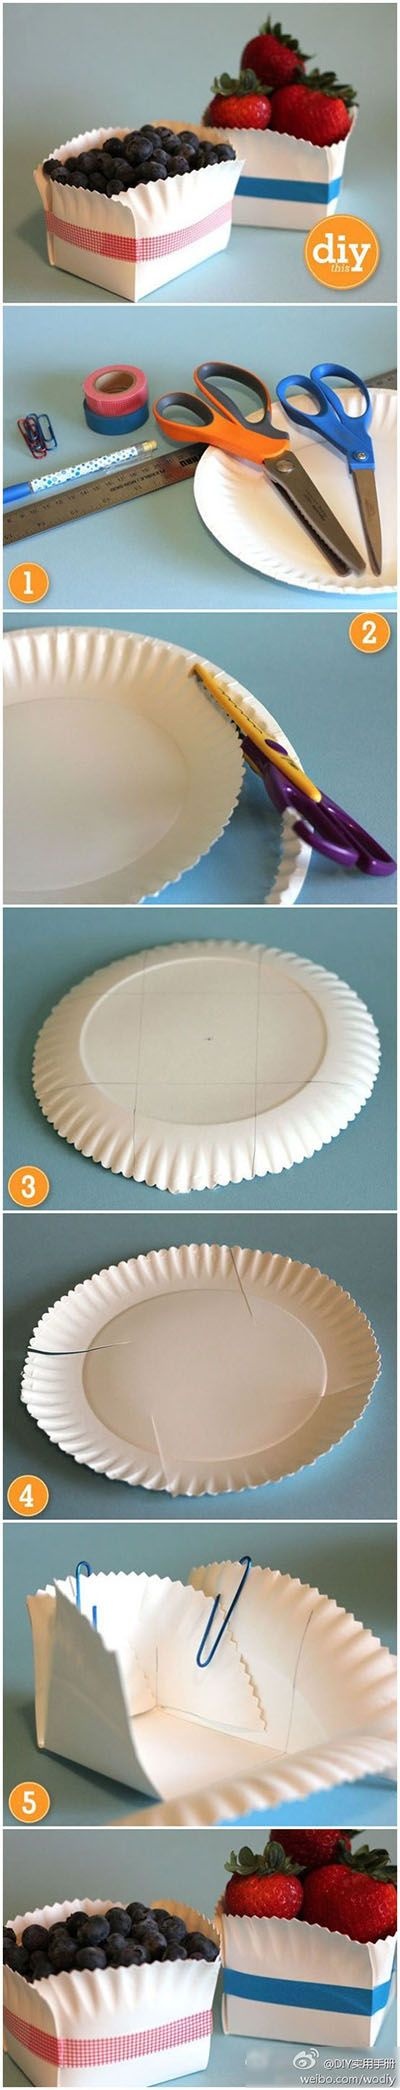 What if I used a pretty or colorful paper plate to make this?   Make a gift box with a paper plate